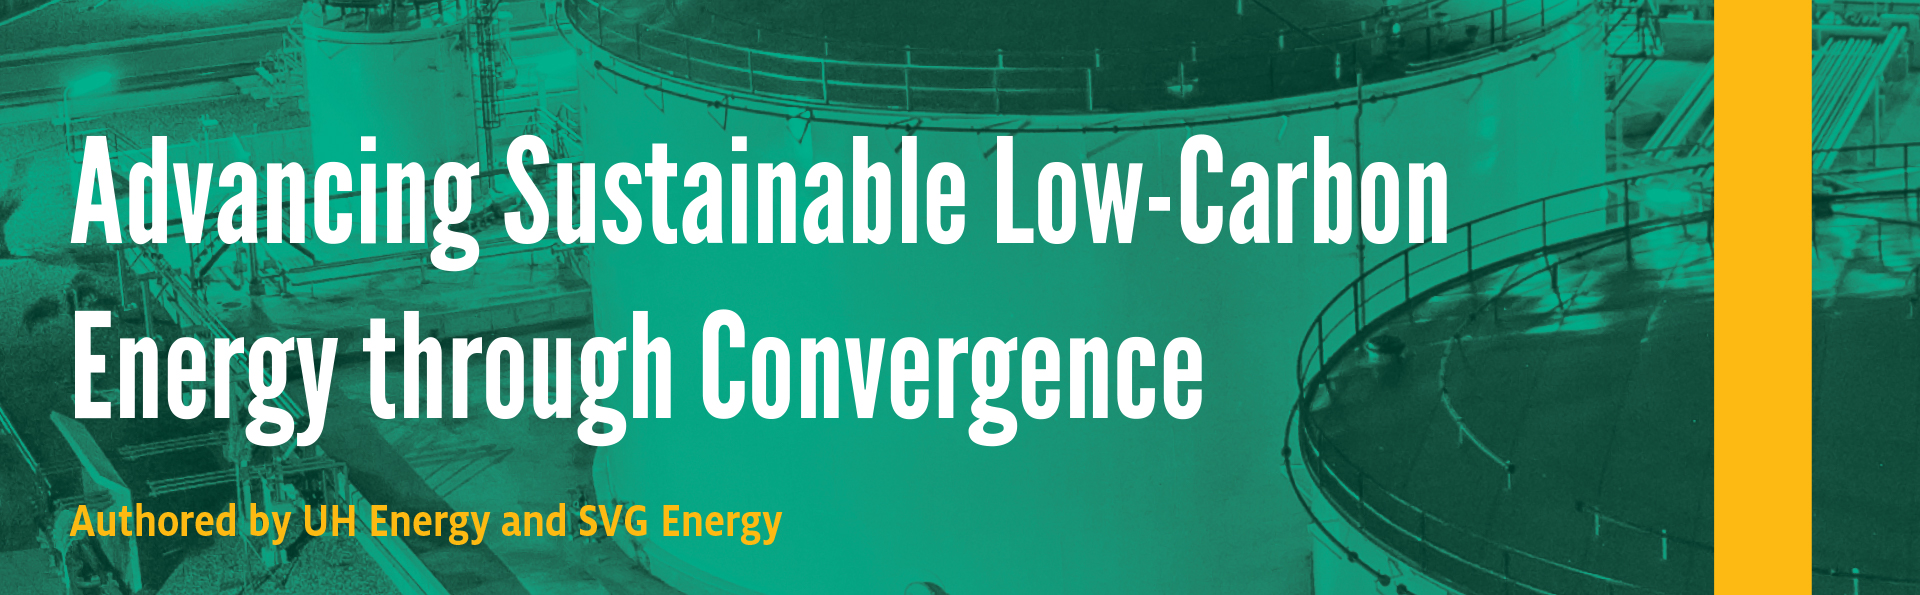 Advancing Sustainable Low-Carbon Energy Through Convergence